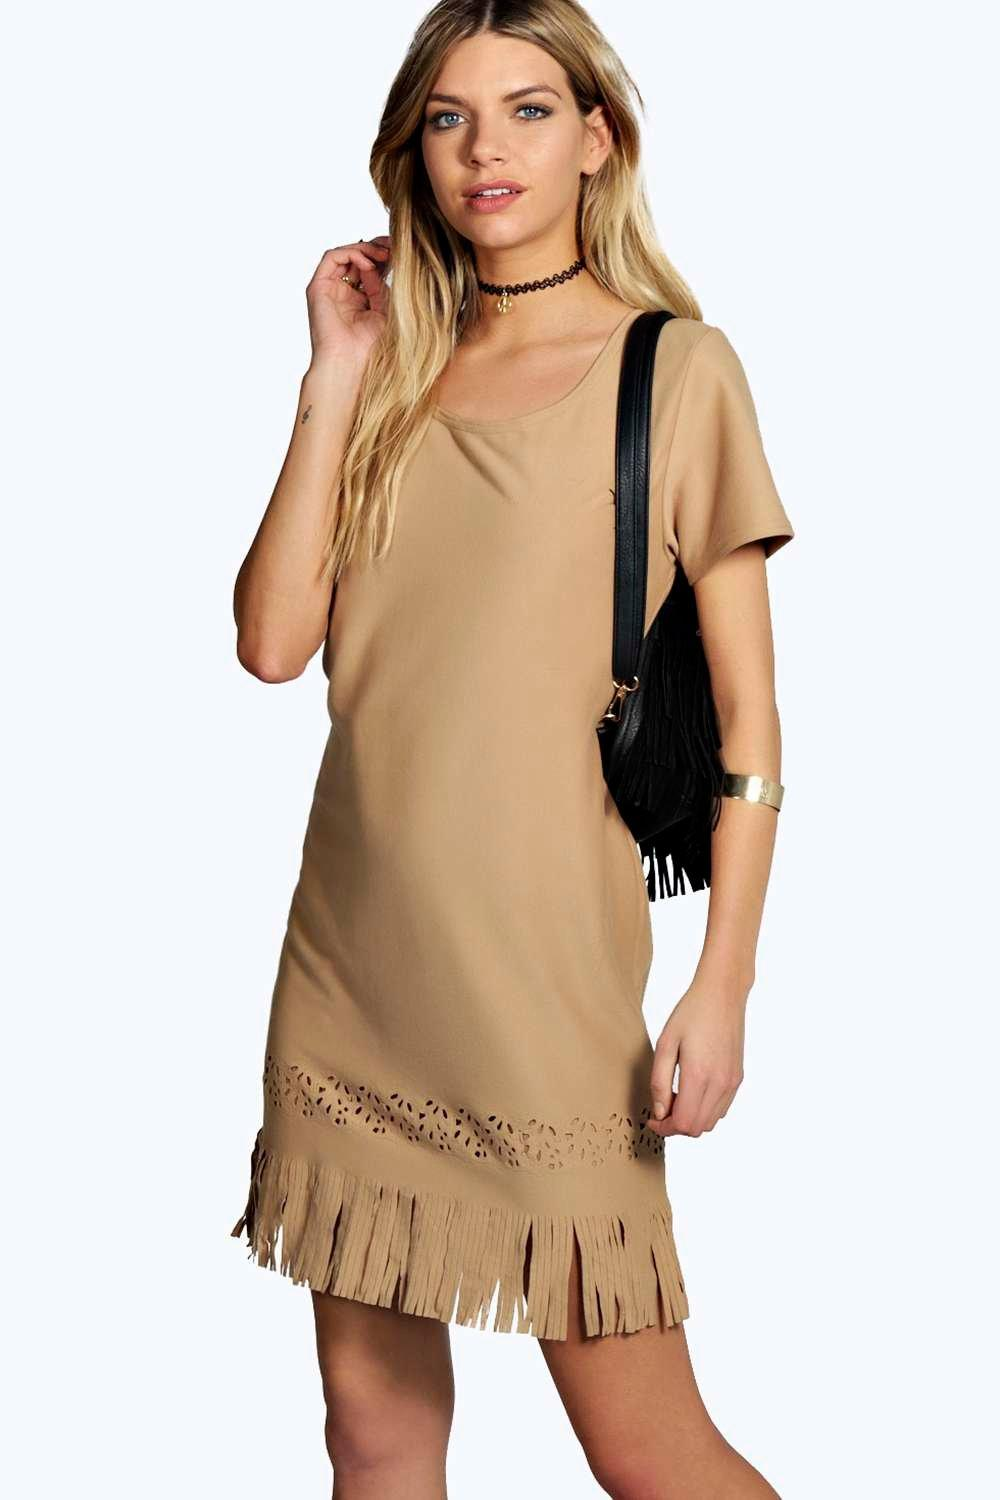 Kim Suedette Laser Cut Fringe Dress